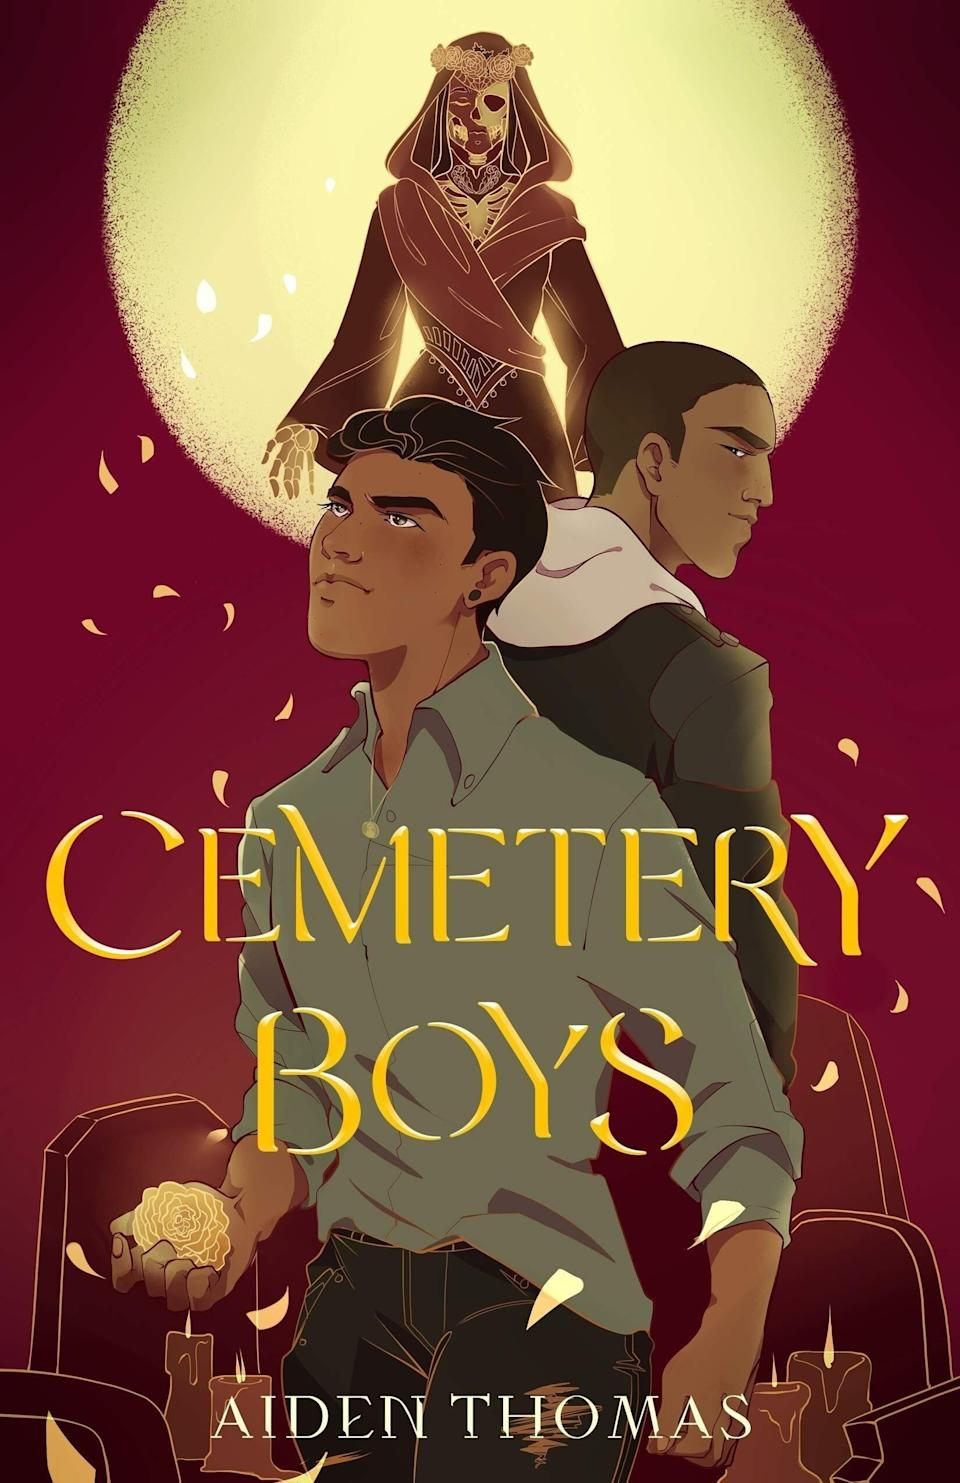 <p>If you like your YA romance with a paranormal twist, <strong><span>Cemetery Boys</span></strong> is for you! Aiden Thomas's breakout debut centers on Yadriel, a trans boy who struggles with the gender-based inherited powers of his Latinx family. To prove himself, he tries to set free the ghost of his murdered cousin, but instead accidentally summons the ghost of his high school's bad boy, Julian. As the boys work together to solve the mystery of Julian's death, Yadriel starts to realize that he doesn't want Julian to go.</p>